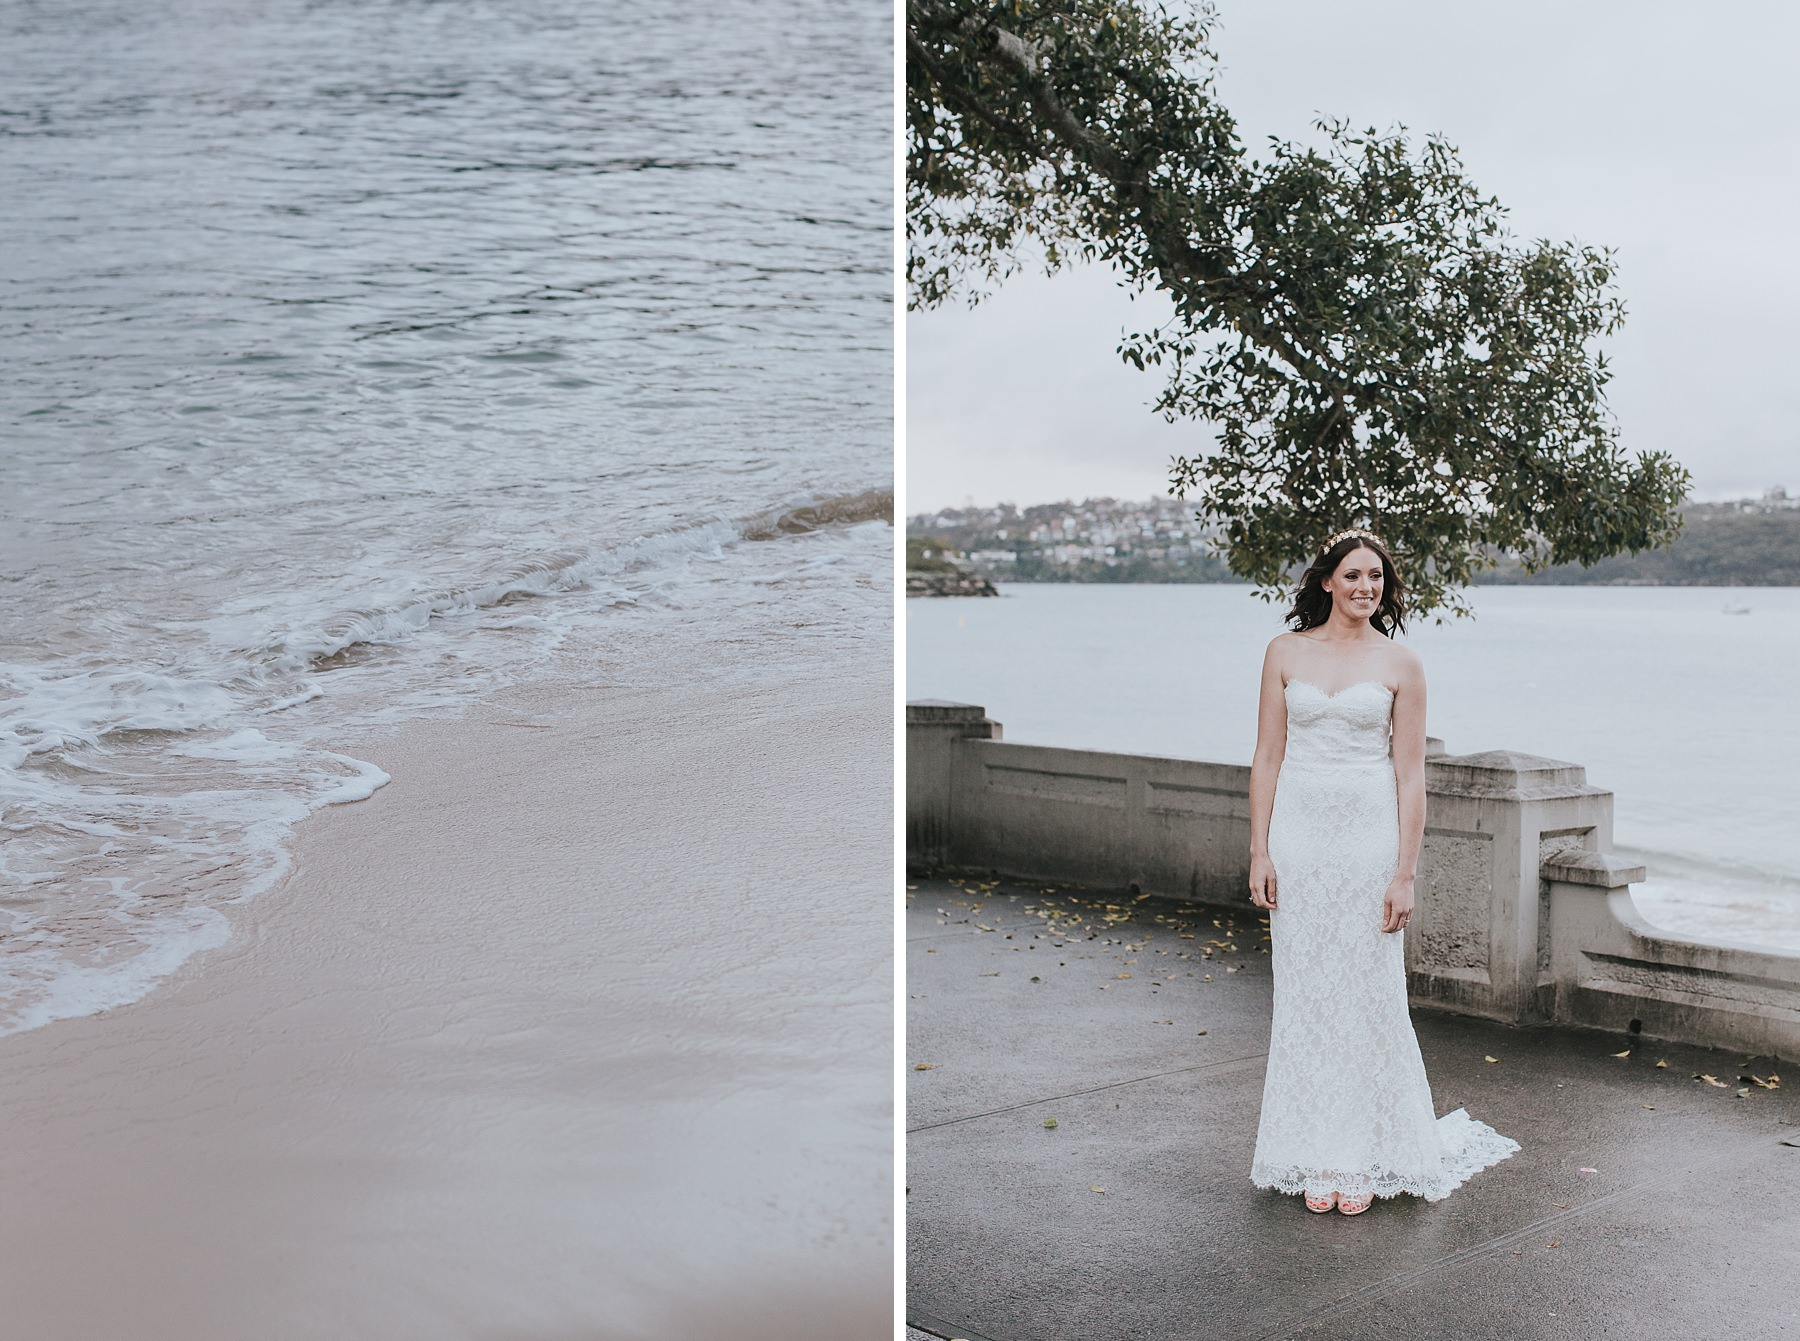 balmoral wedding photographer